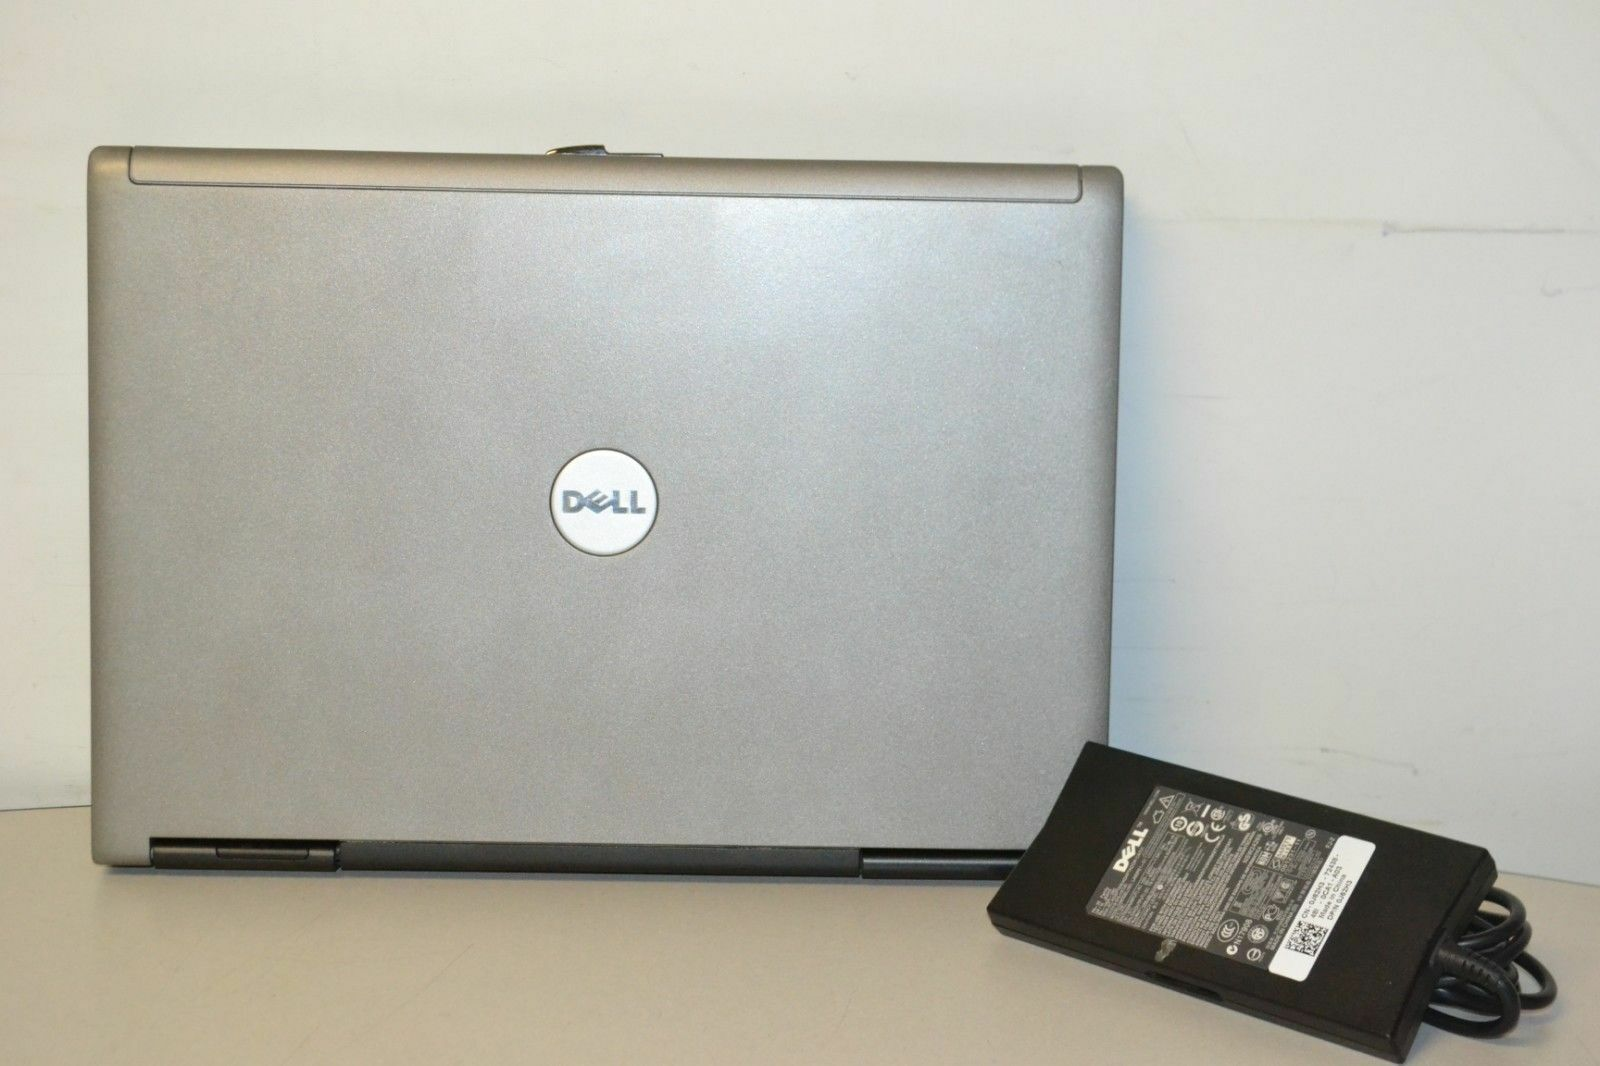 Laptop Windows - Dell Latitude D630 Laptop Windows XP Professional Dual Core 2Ghz 3GB 160GB WIFI